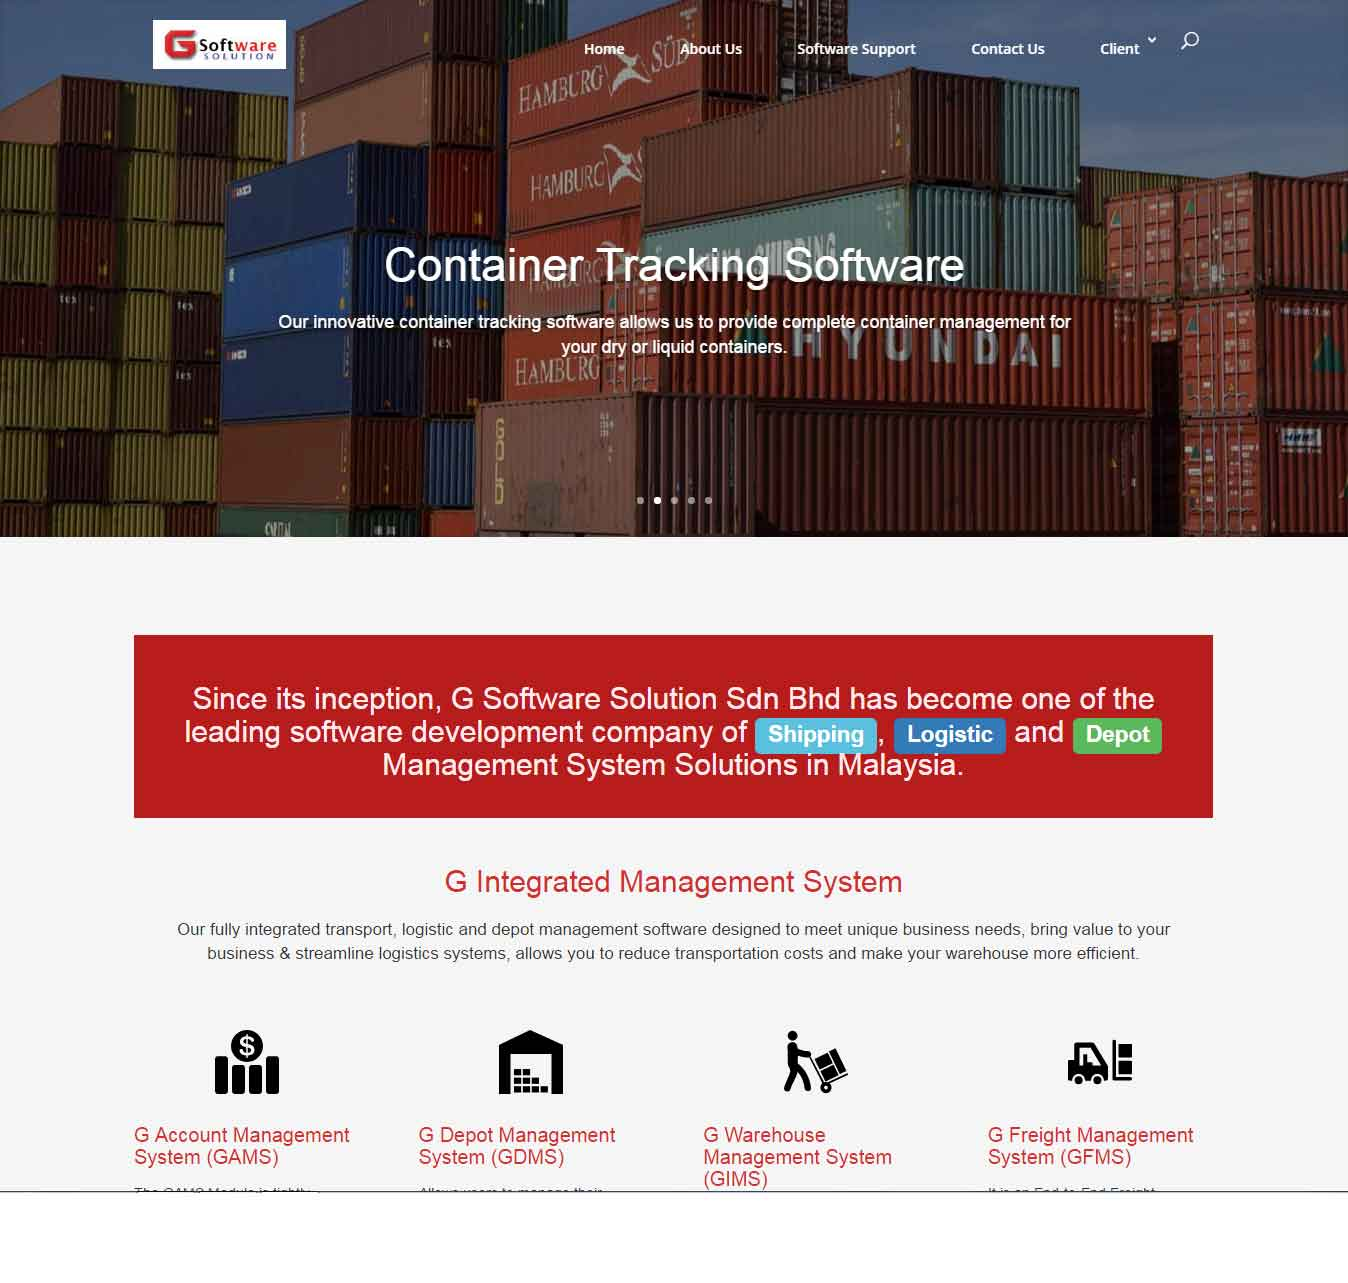 G Software Solution Sdn Bhd - Website design and Local SEO Services by Sky Rocket Digital | Klang Valley & Selangor in Malaysia